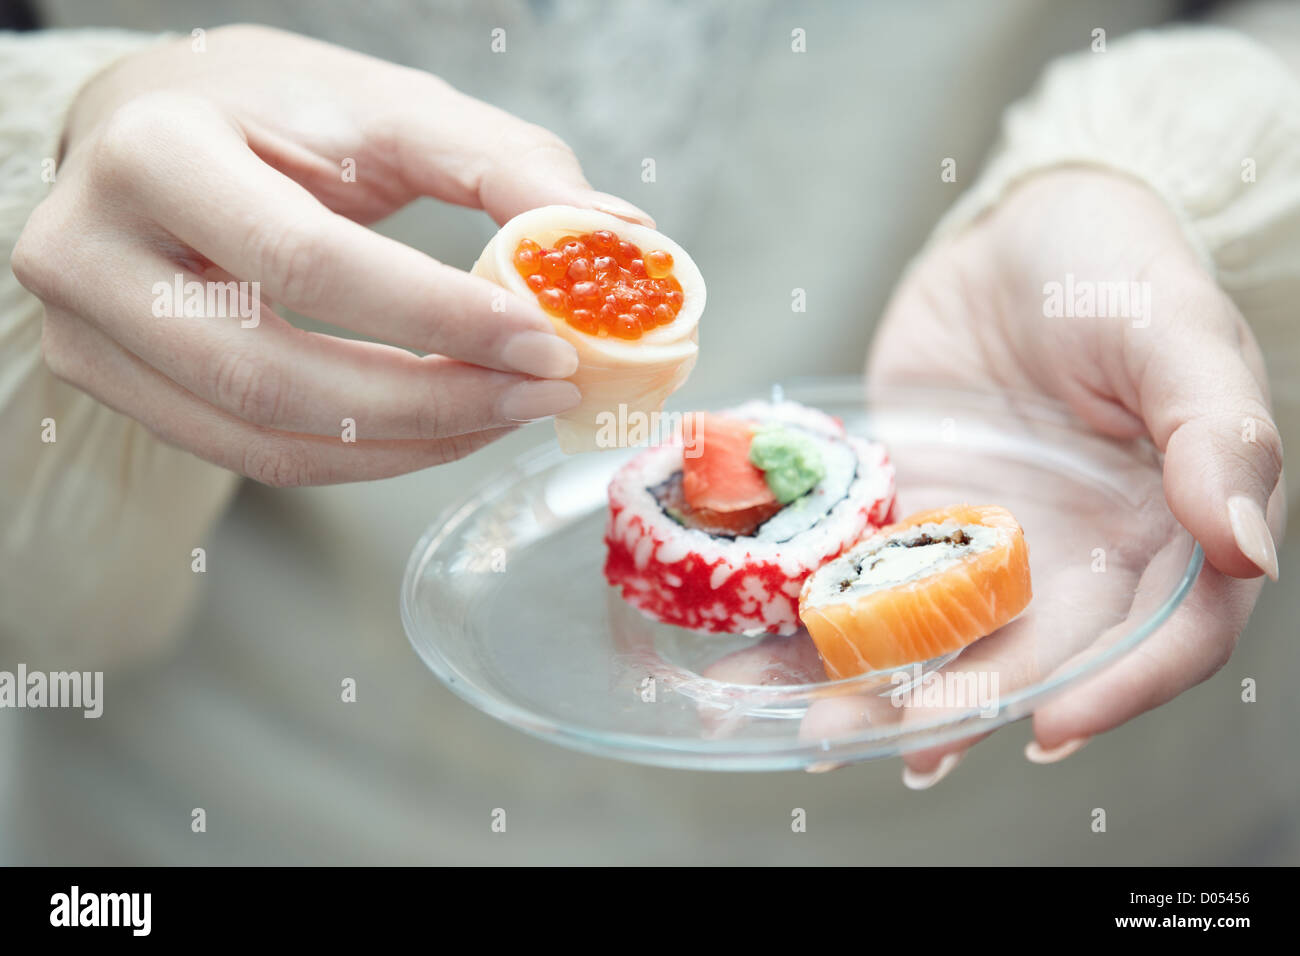 Human hands holding place with sushi - Stock Image